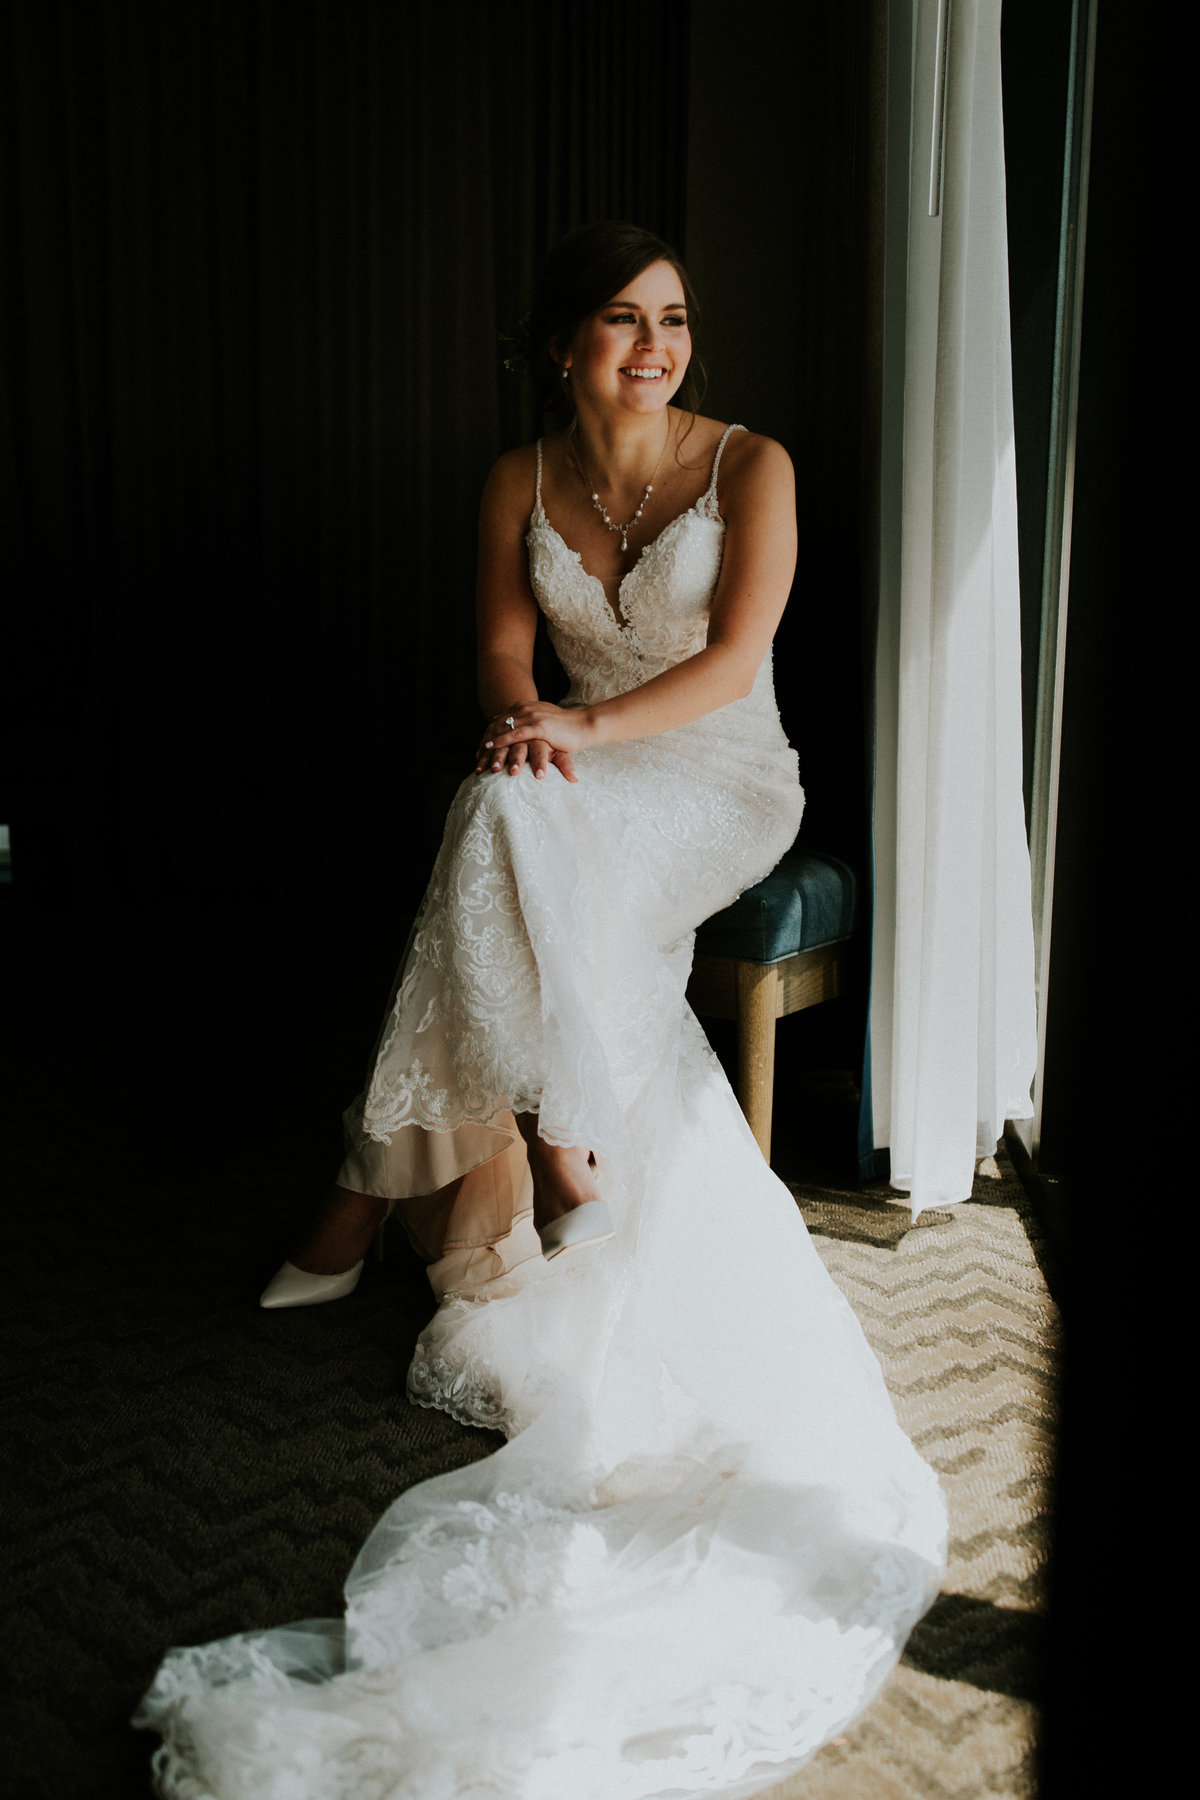 One of the top wedding photos of 2019. Taken by Adore Wedding Photography- Toledo Ohio Wedding Photographers. This photo is of a bride sitting with her gown spread out to show all the details. It was taken at the Renaissance Hotel in Toledo Ohio